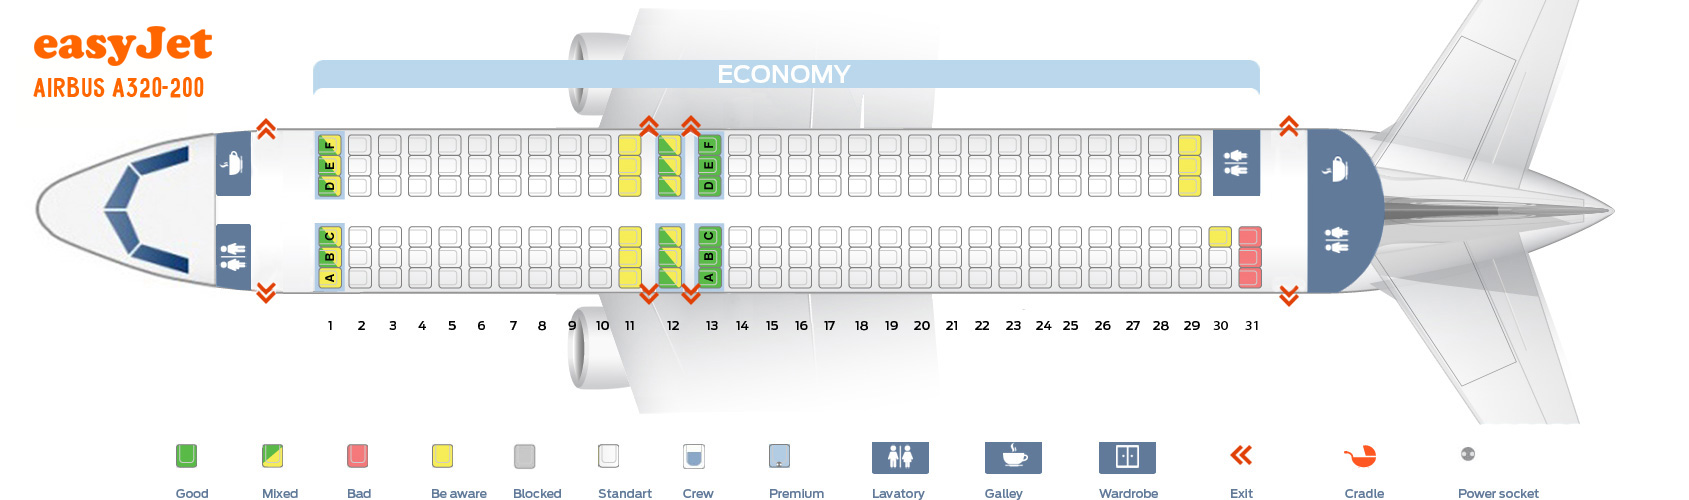 Seat Map Airbus A320 Easyjet Best Seats In The Plane